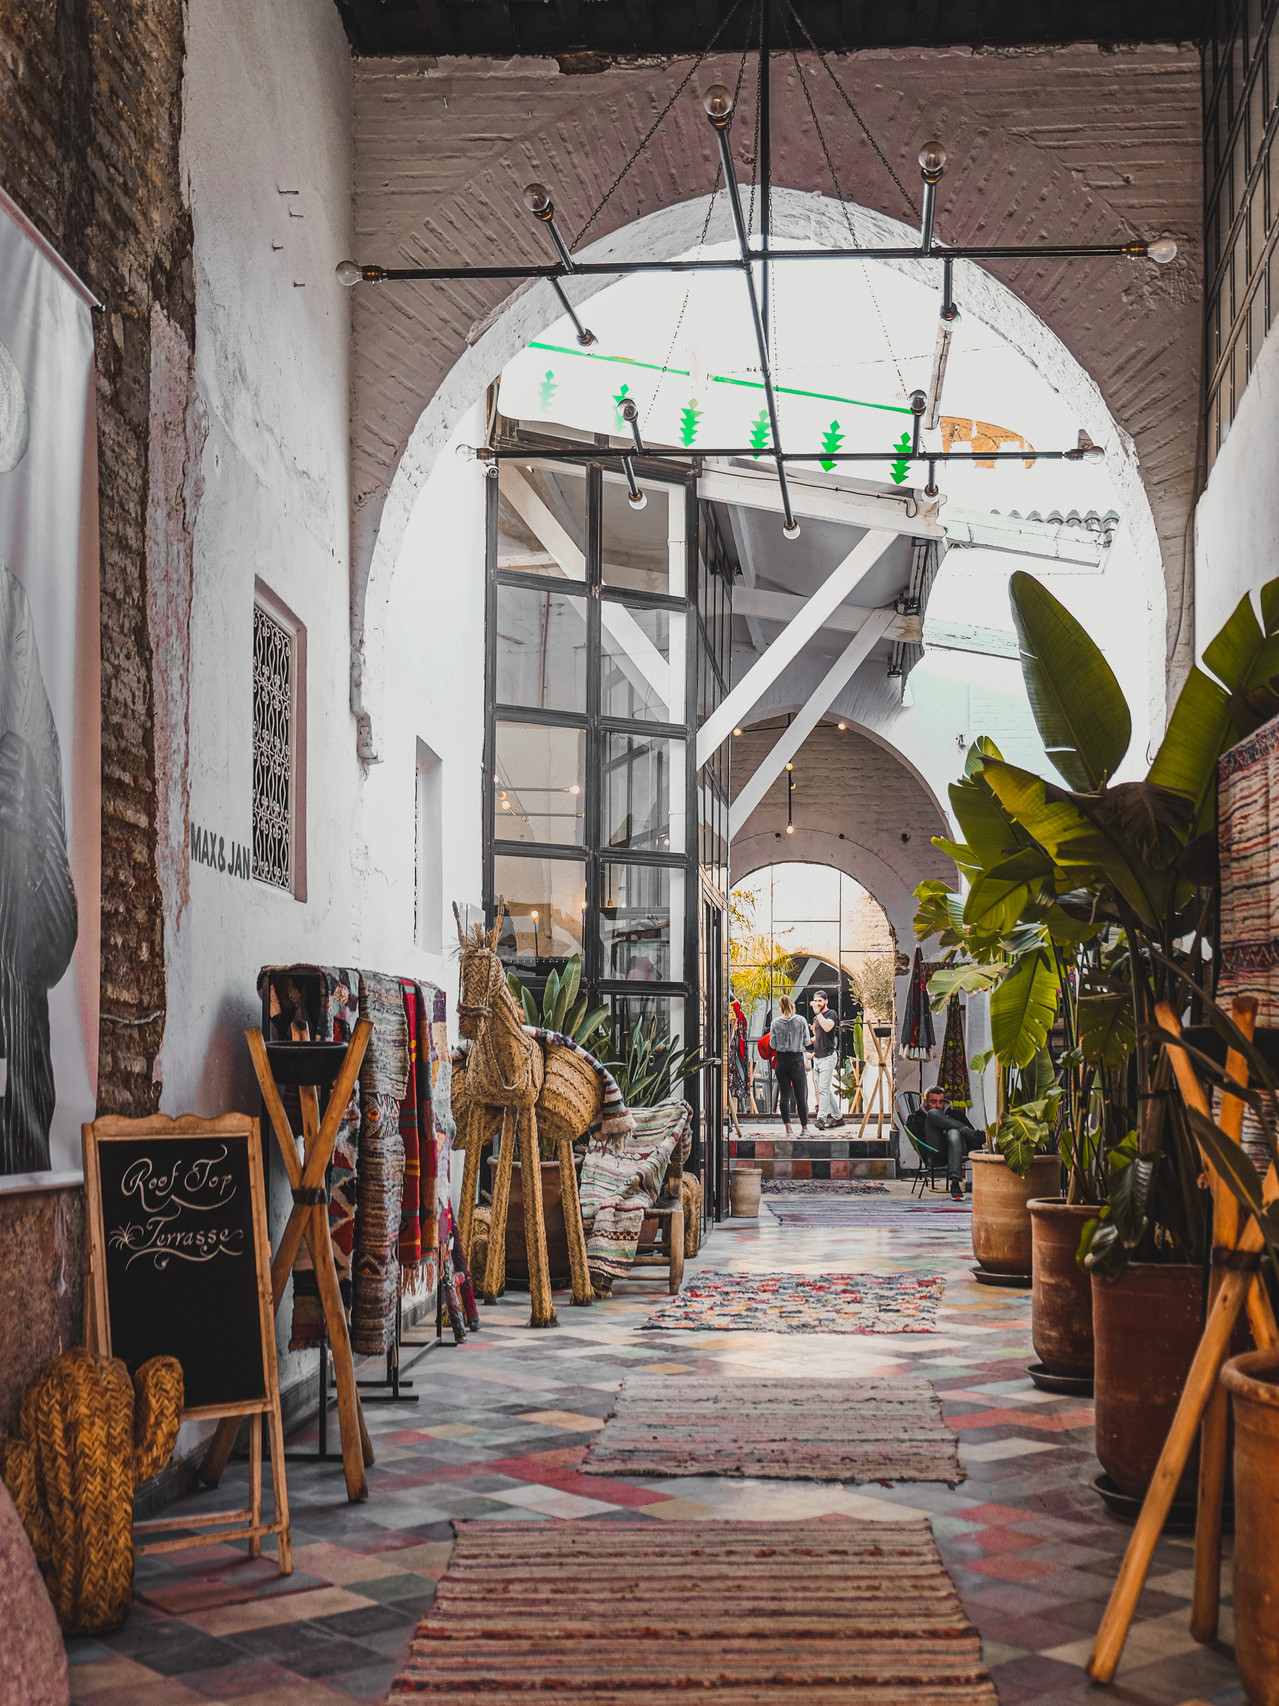 Bohemian lifestyle shop in the Medina souk | RollingBear Travels